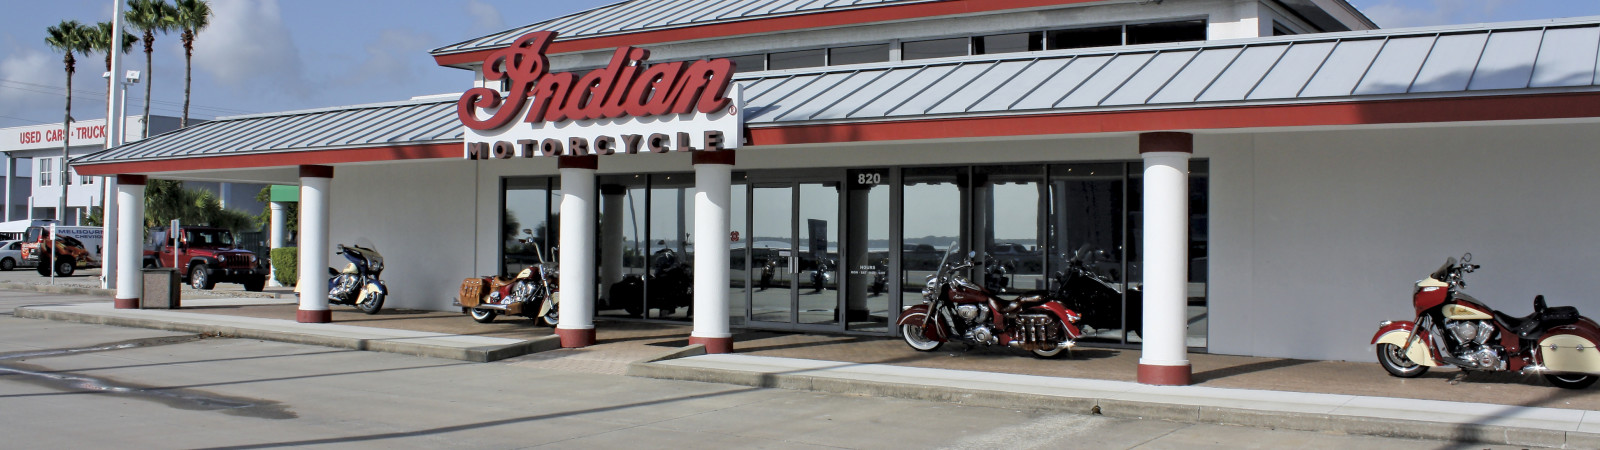 Indian Motorcycles - 5,000 s.f. / retail